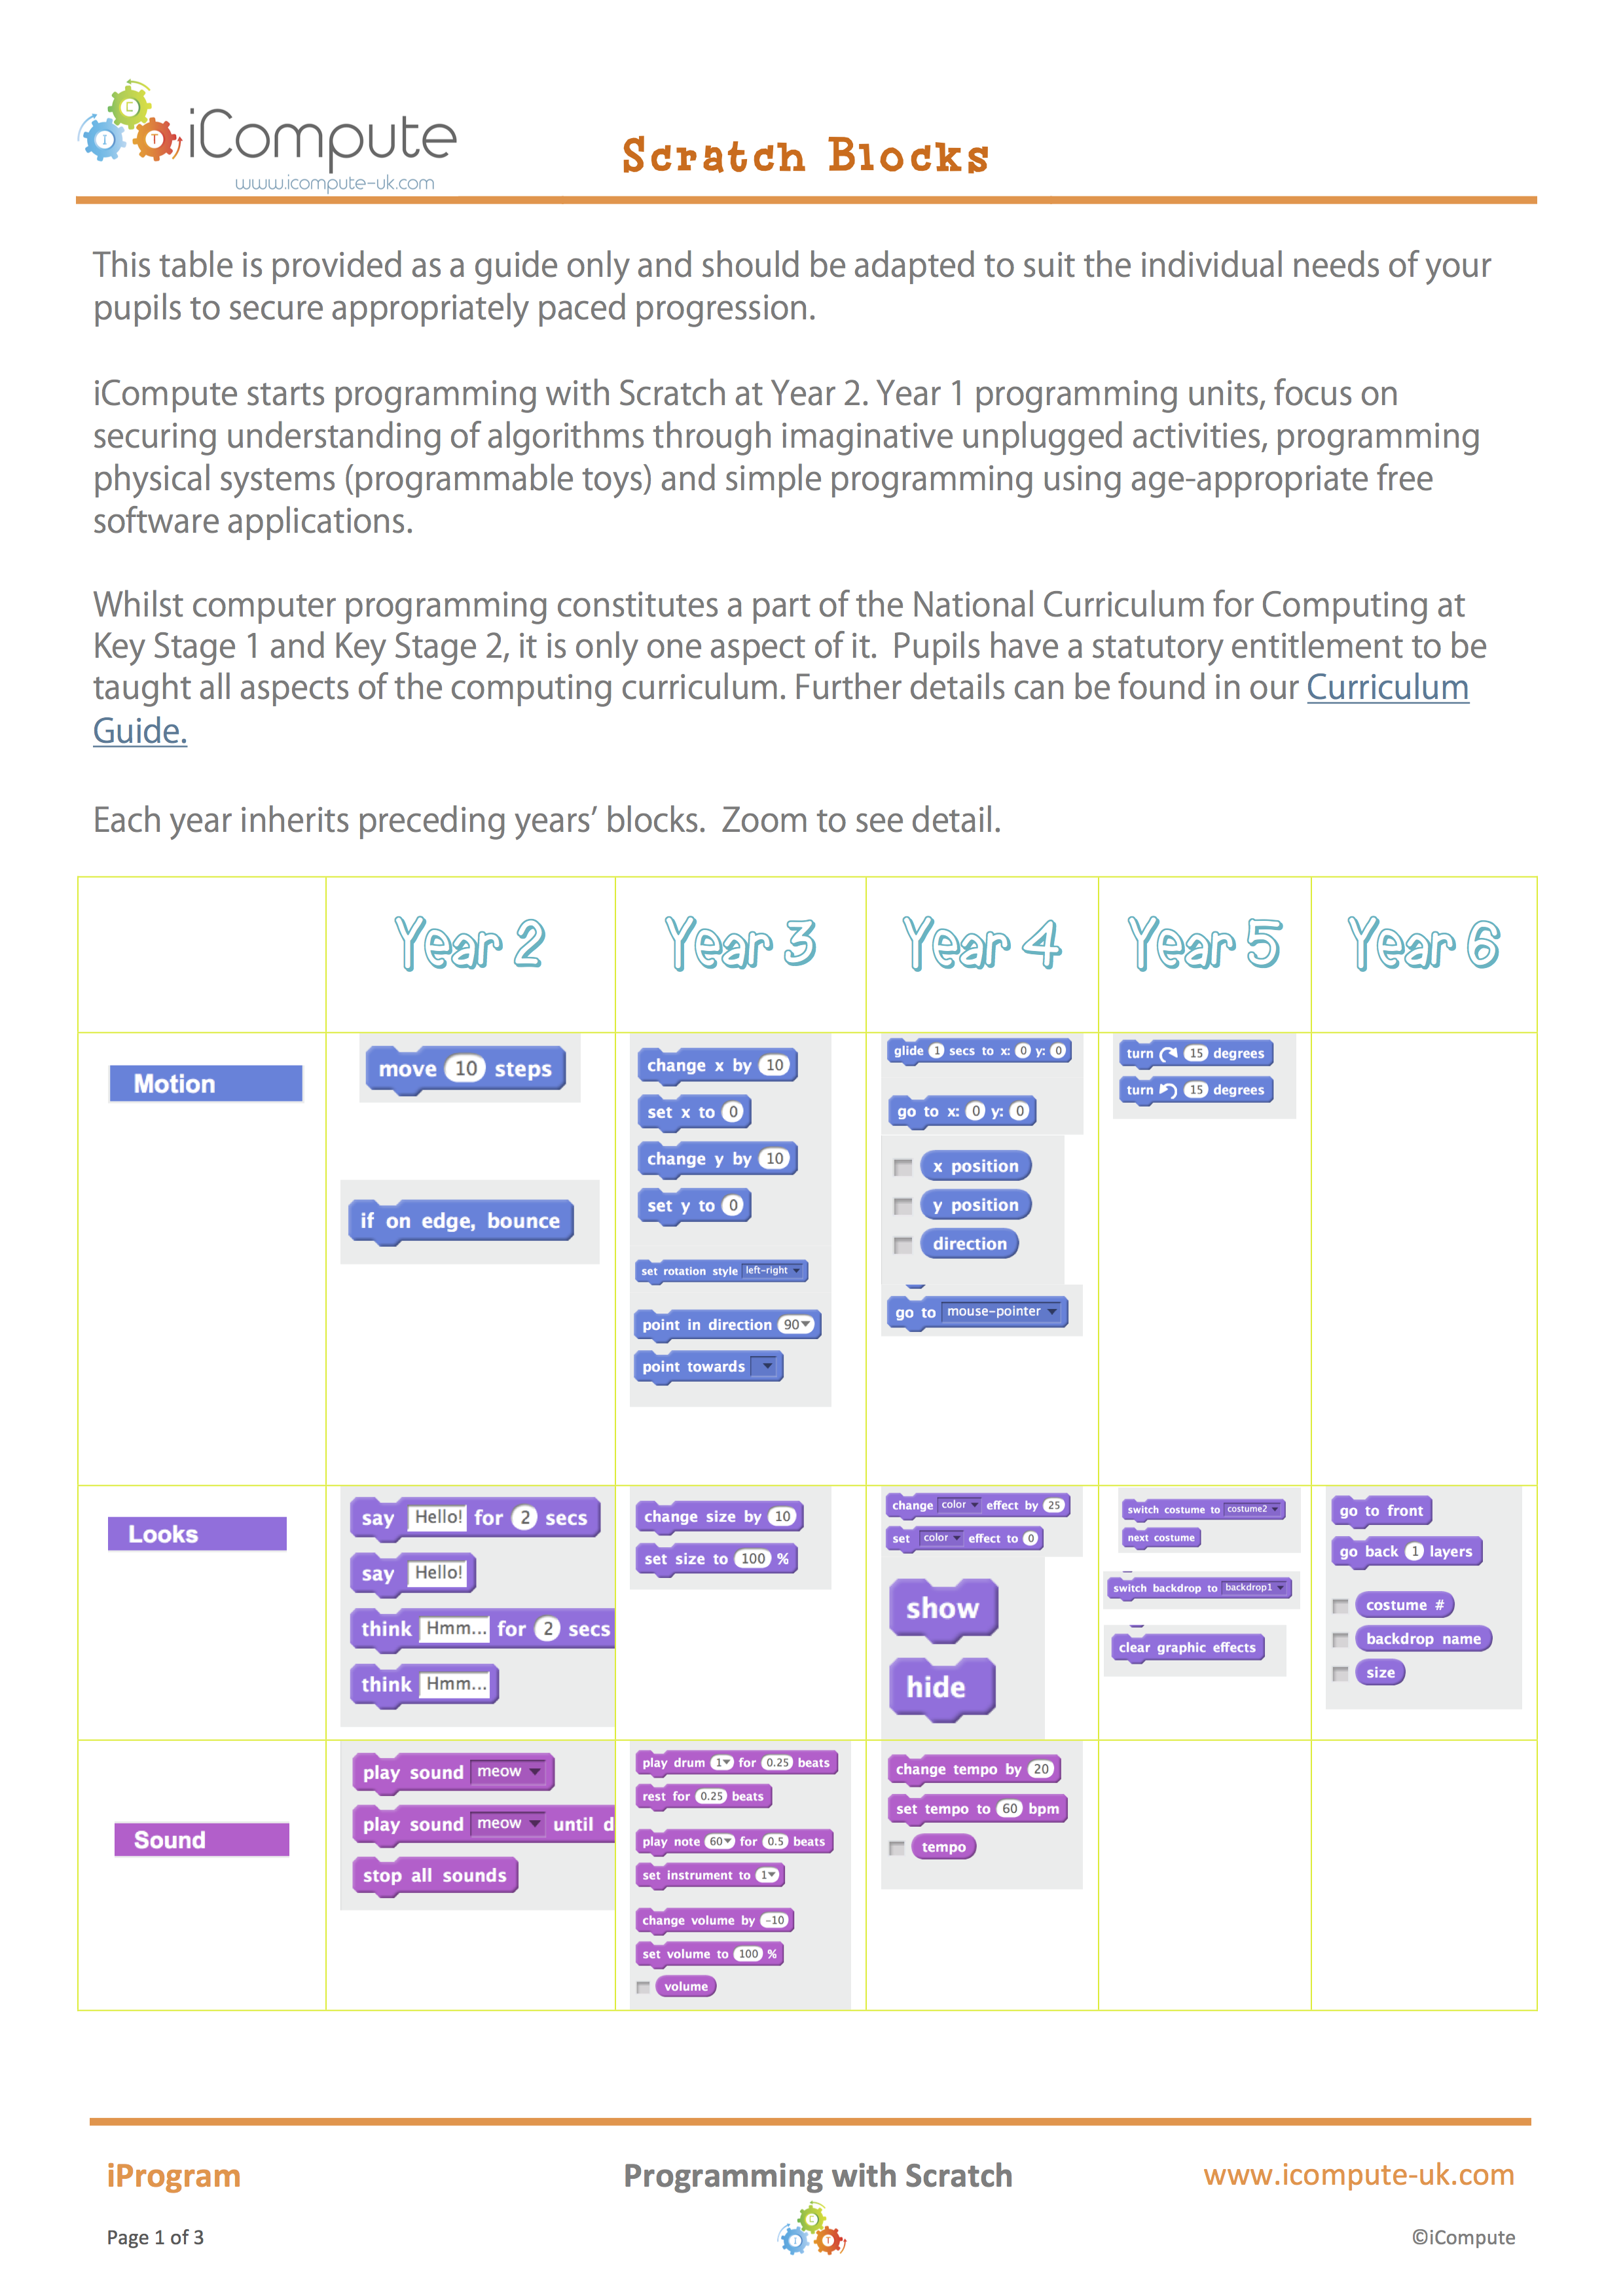 Primary Programming - Guide to Scratch Skills Progression